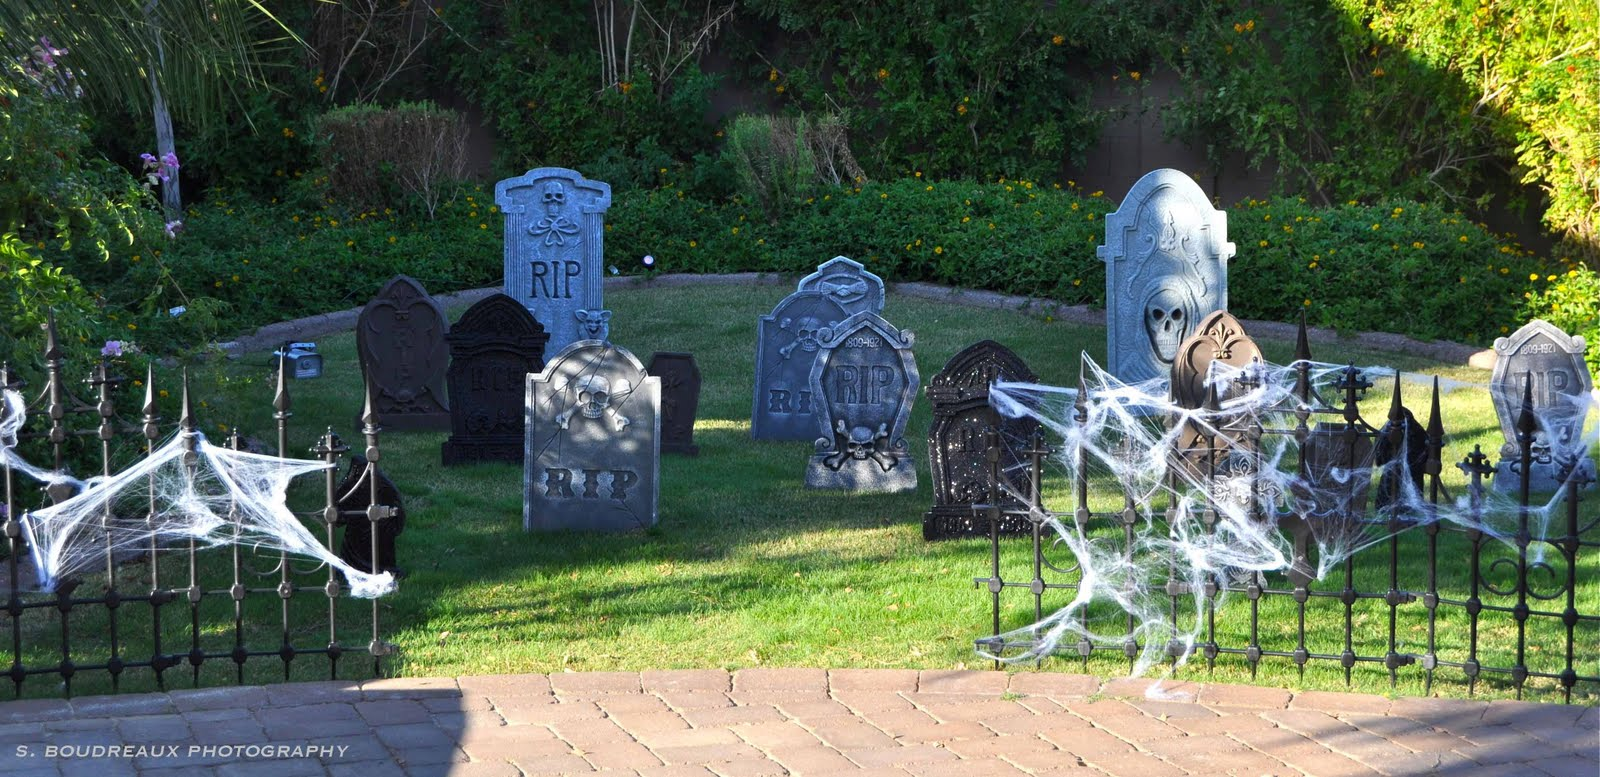 Backyard Haunted Forest Ideas : 20092010 All rights reserved